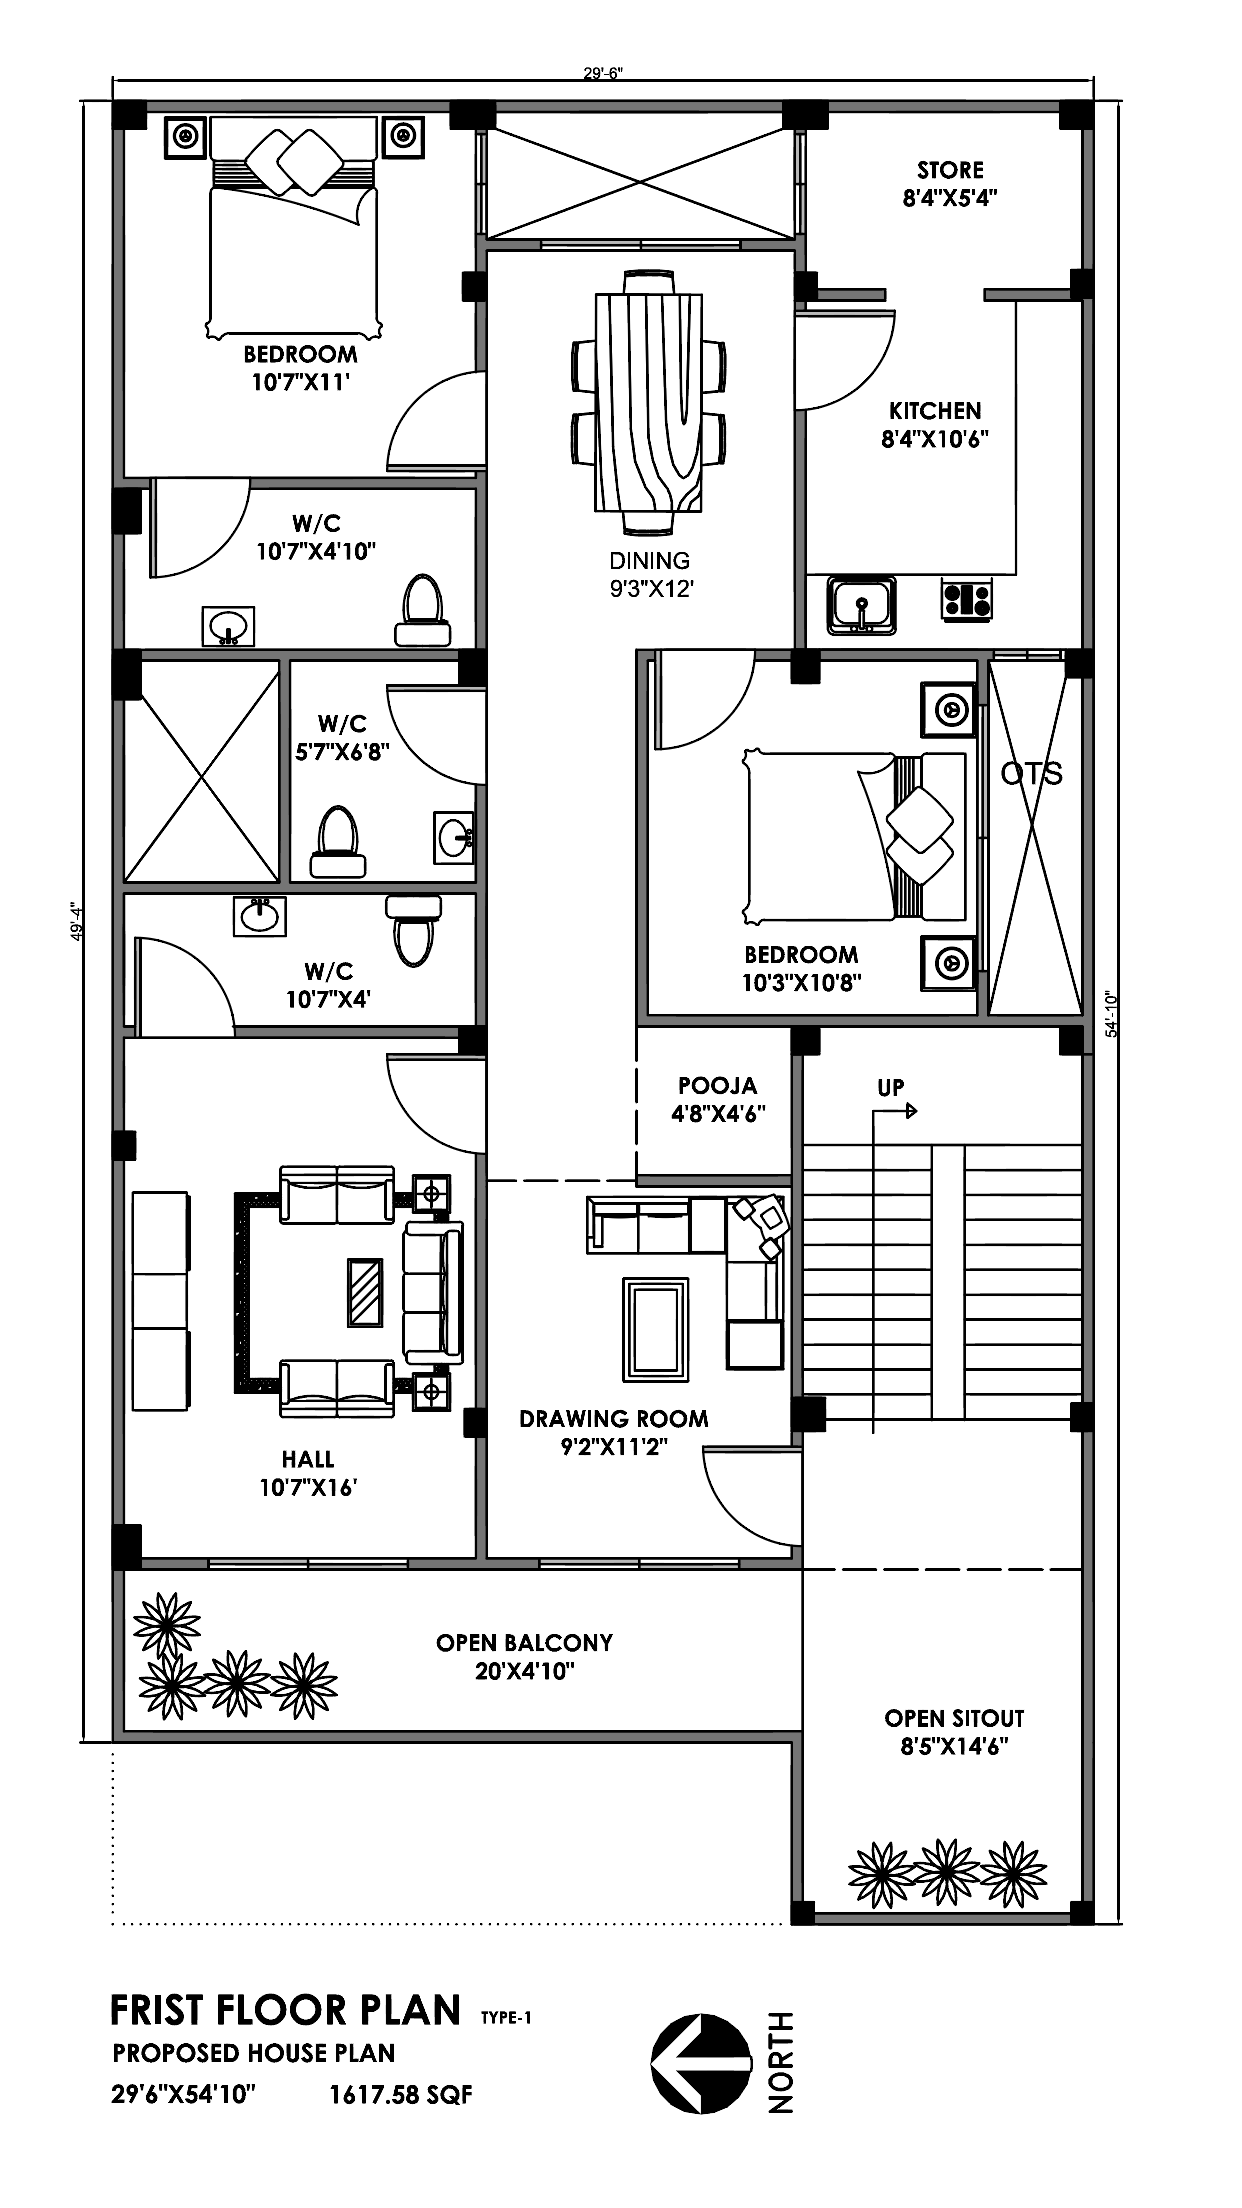 Zohaib31 I Will Convert Hand Sketch Pdf Or Image Drawings To Auotcad For 15 On Fiverr Com 30x50 House Plans Little House Plans New House Plans